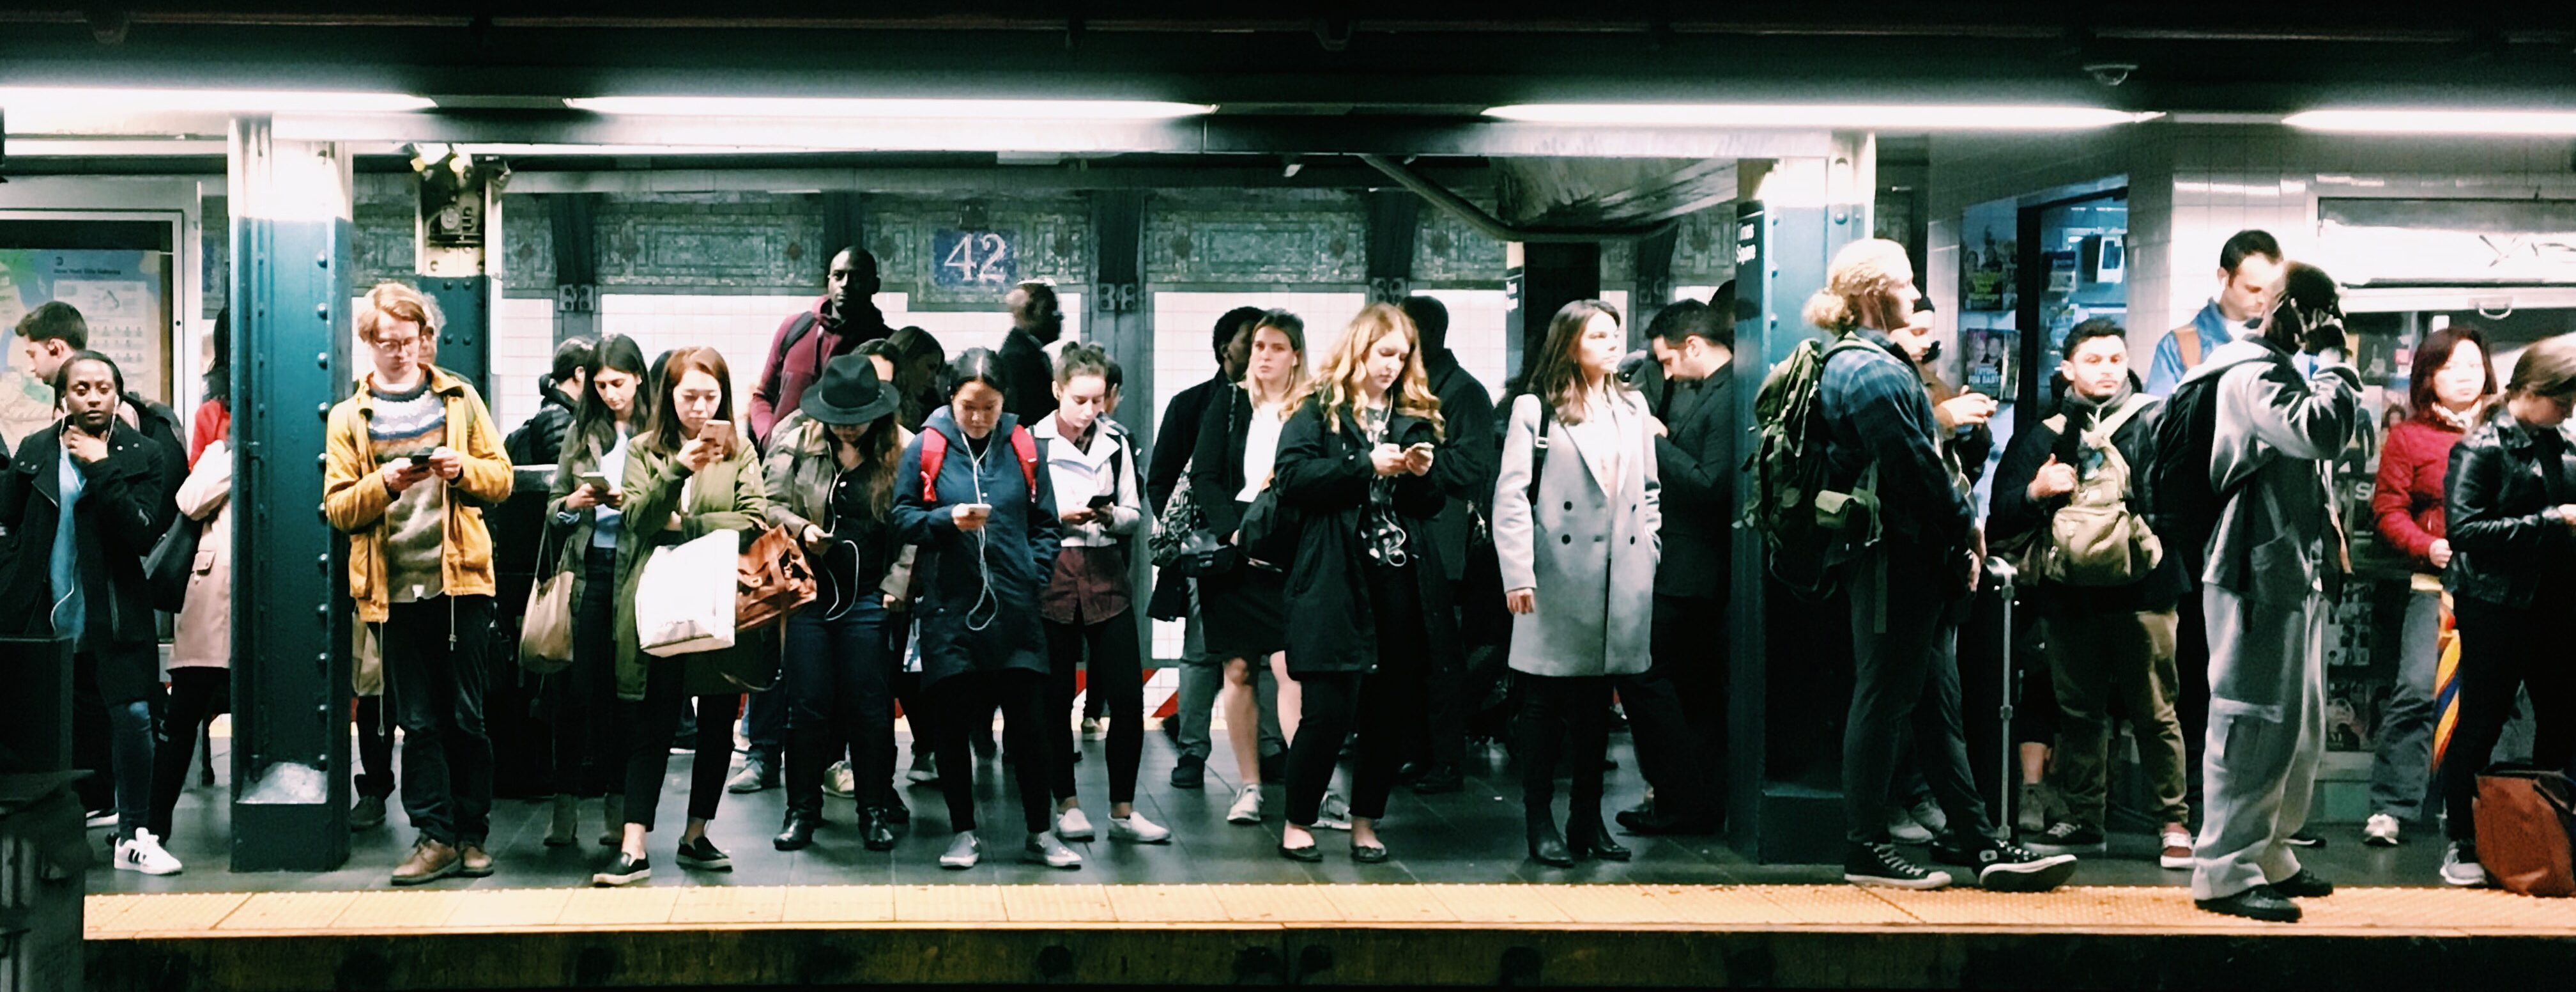 People waiting to test in a subway